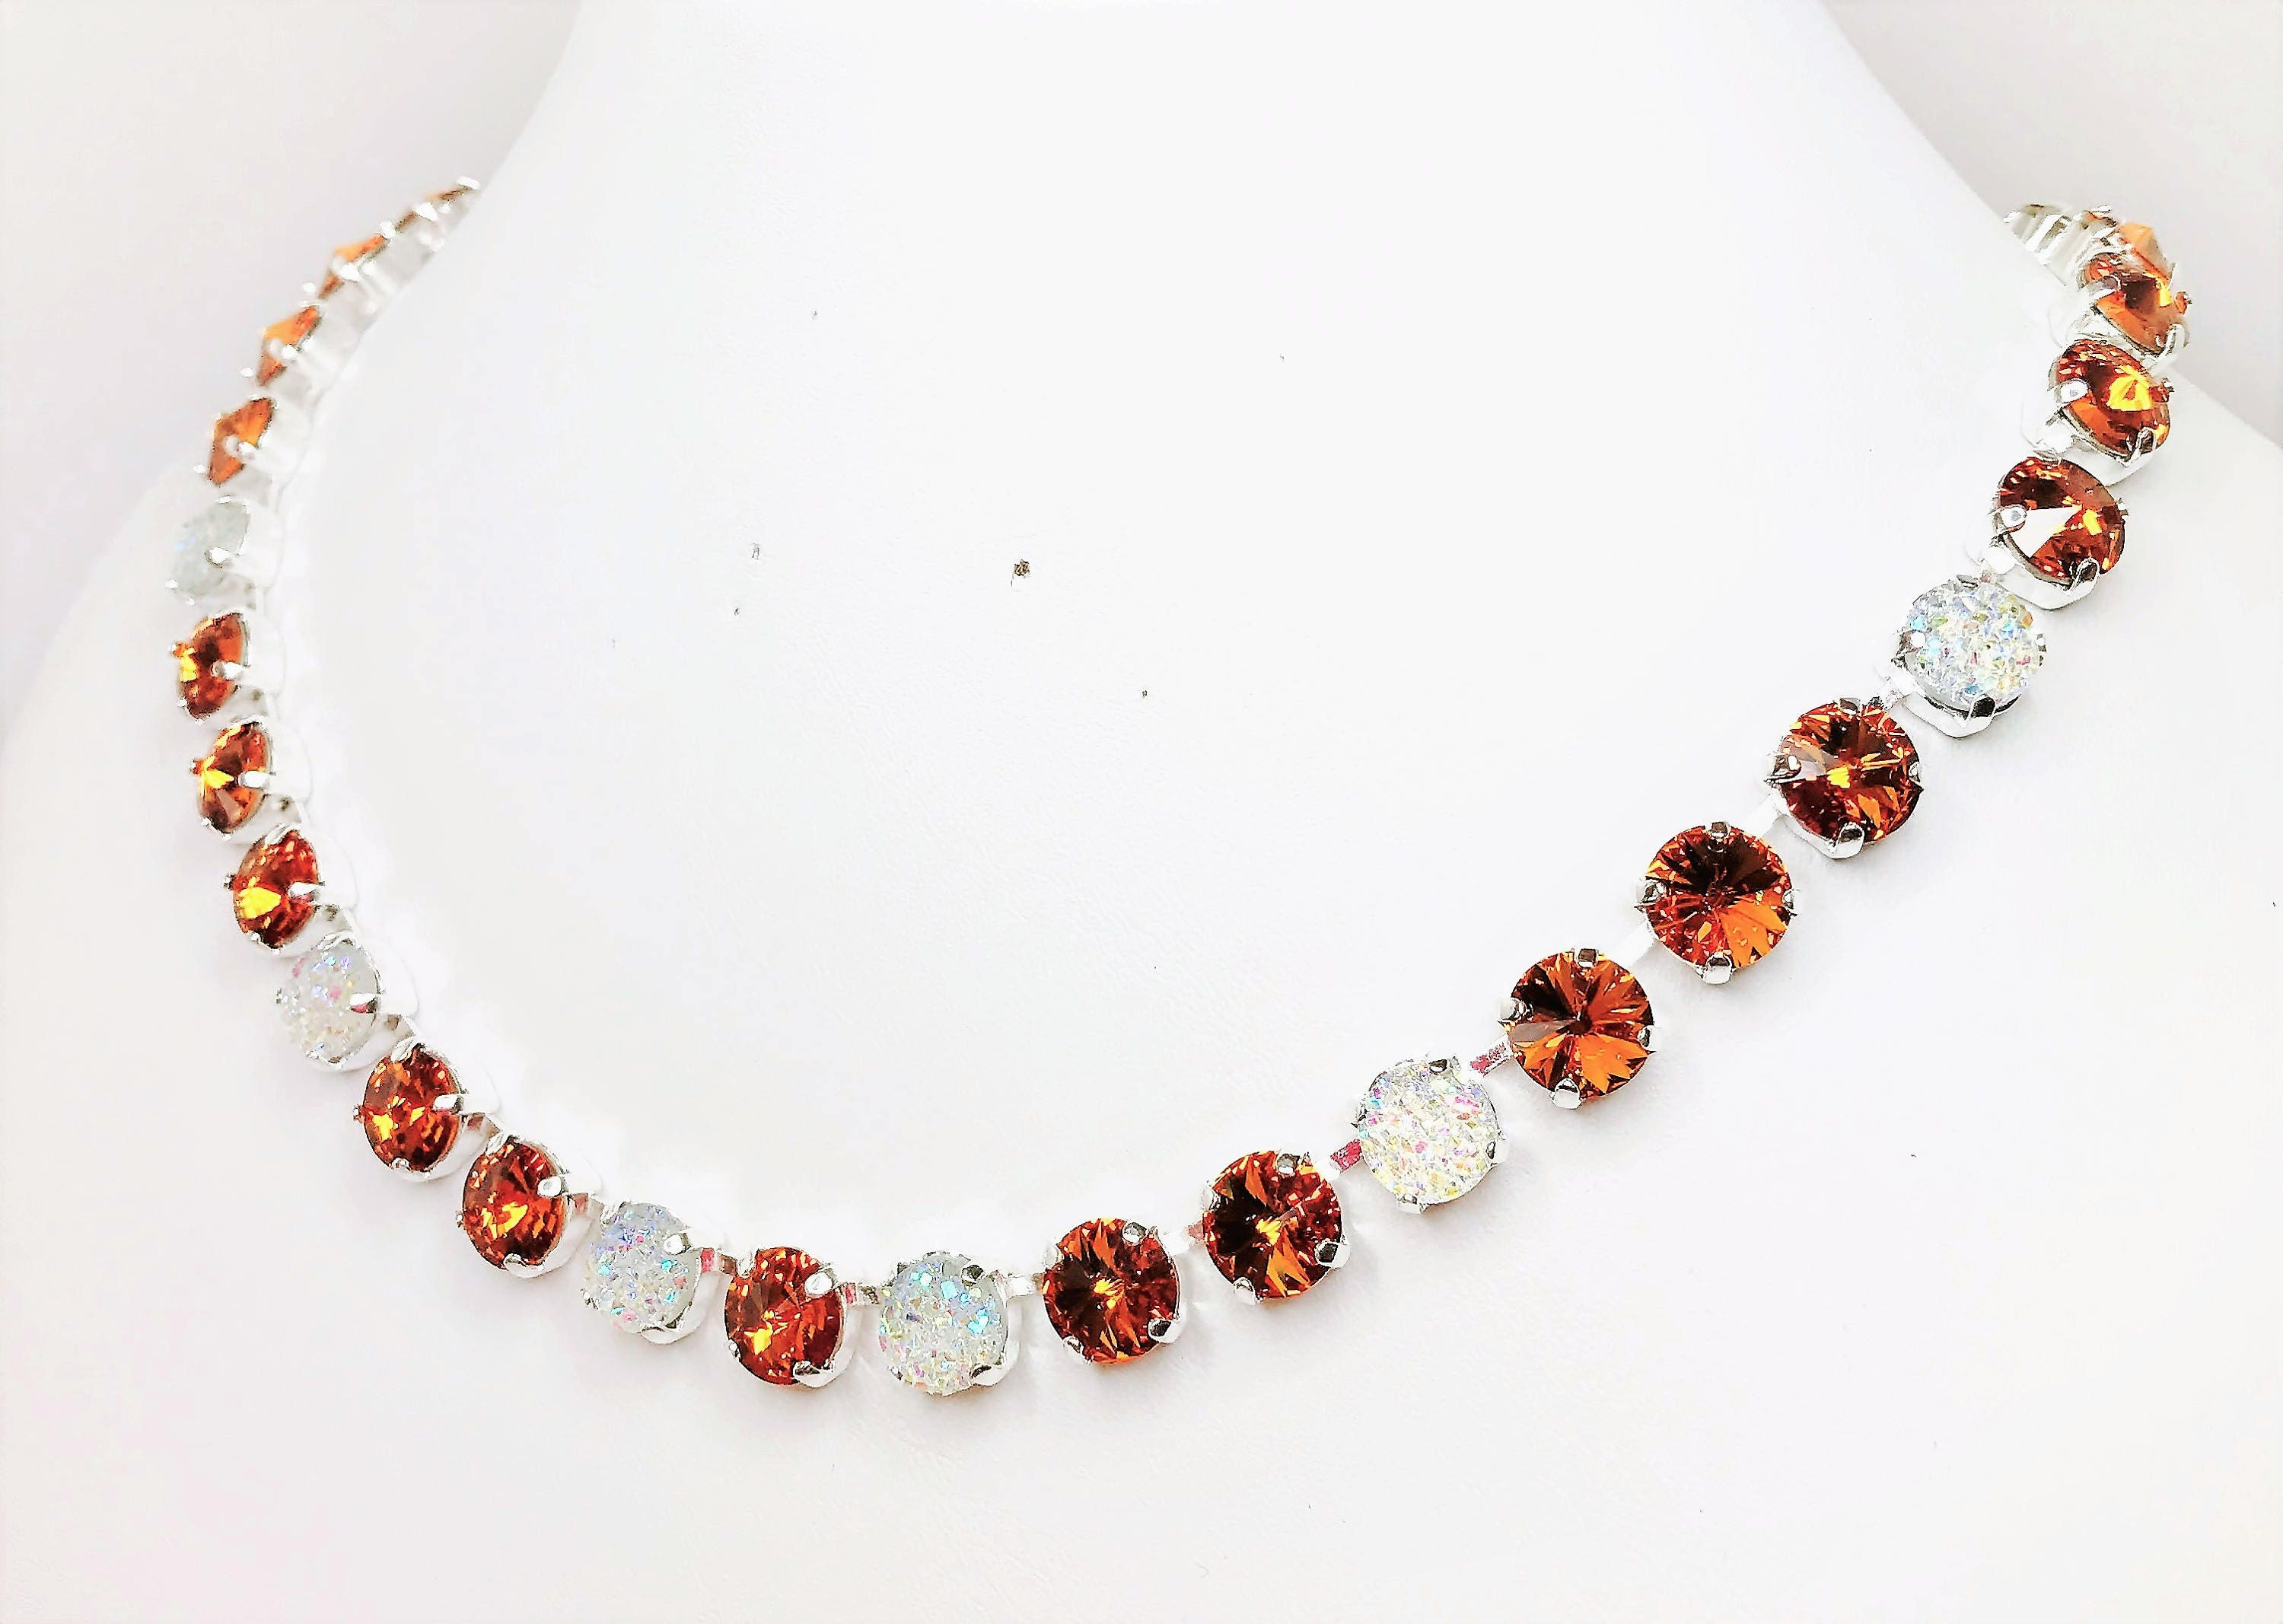 Topaz Crystal Statement Necklace 8mm Swarovski Chatons Topaz Jewellery Unique Necklace for Her Designer Jewelry Lynns Gem Creations